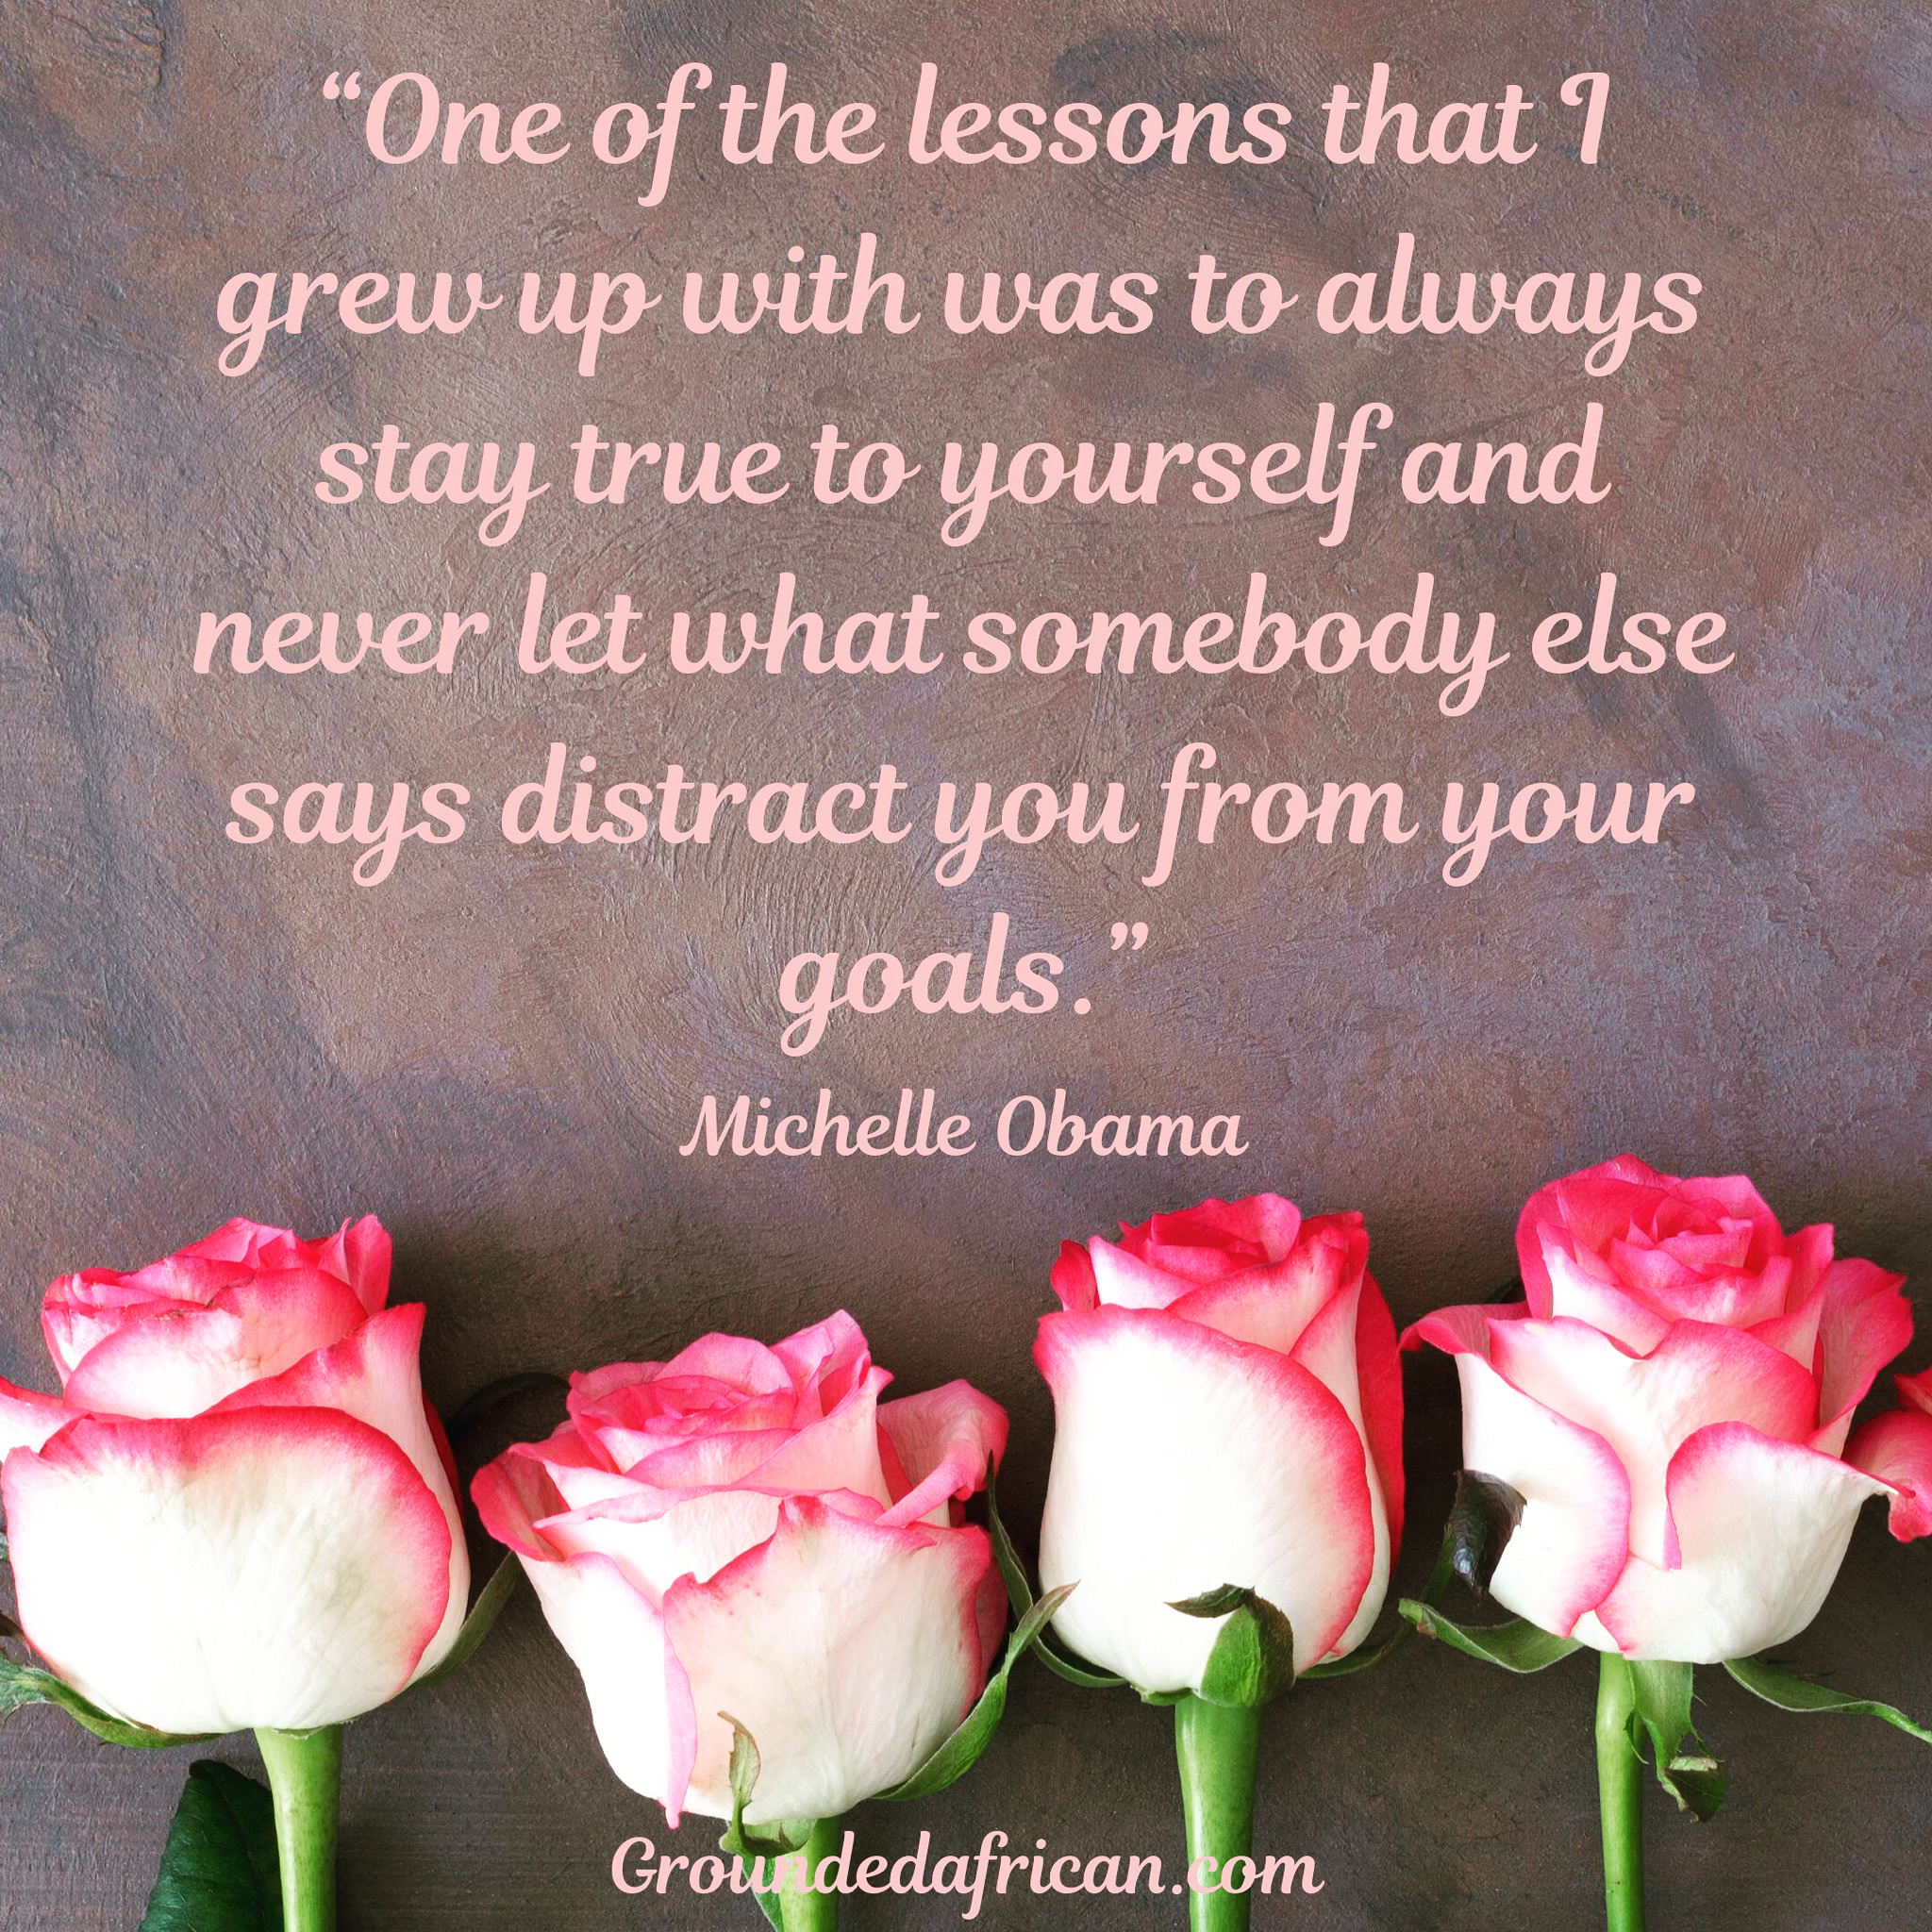 White roses with pink trim . Quote by Michelle Obama